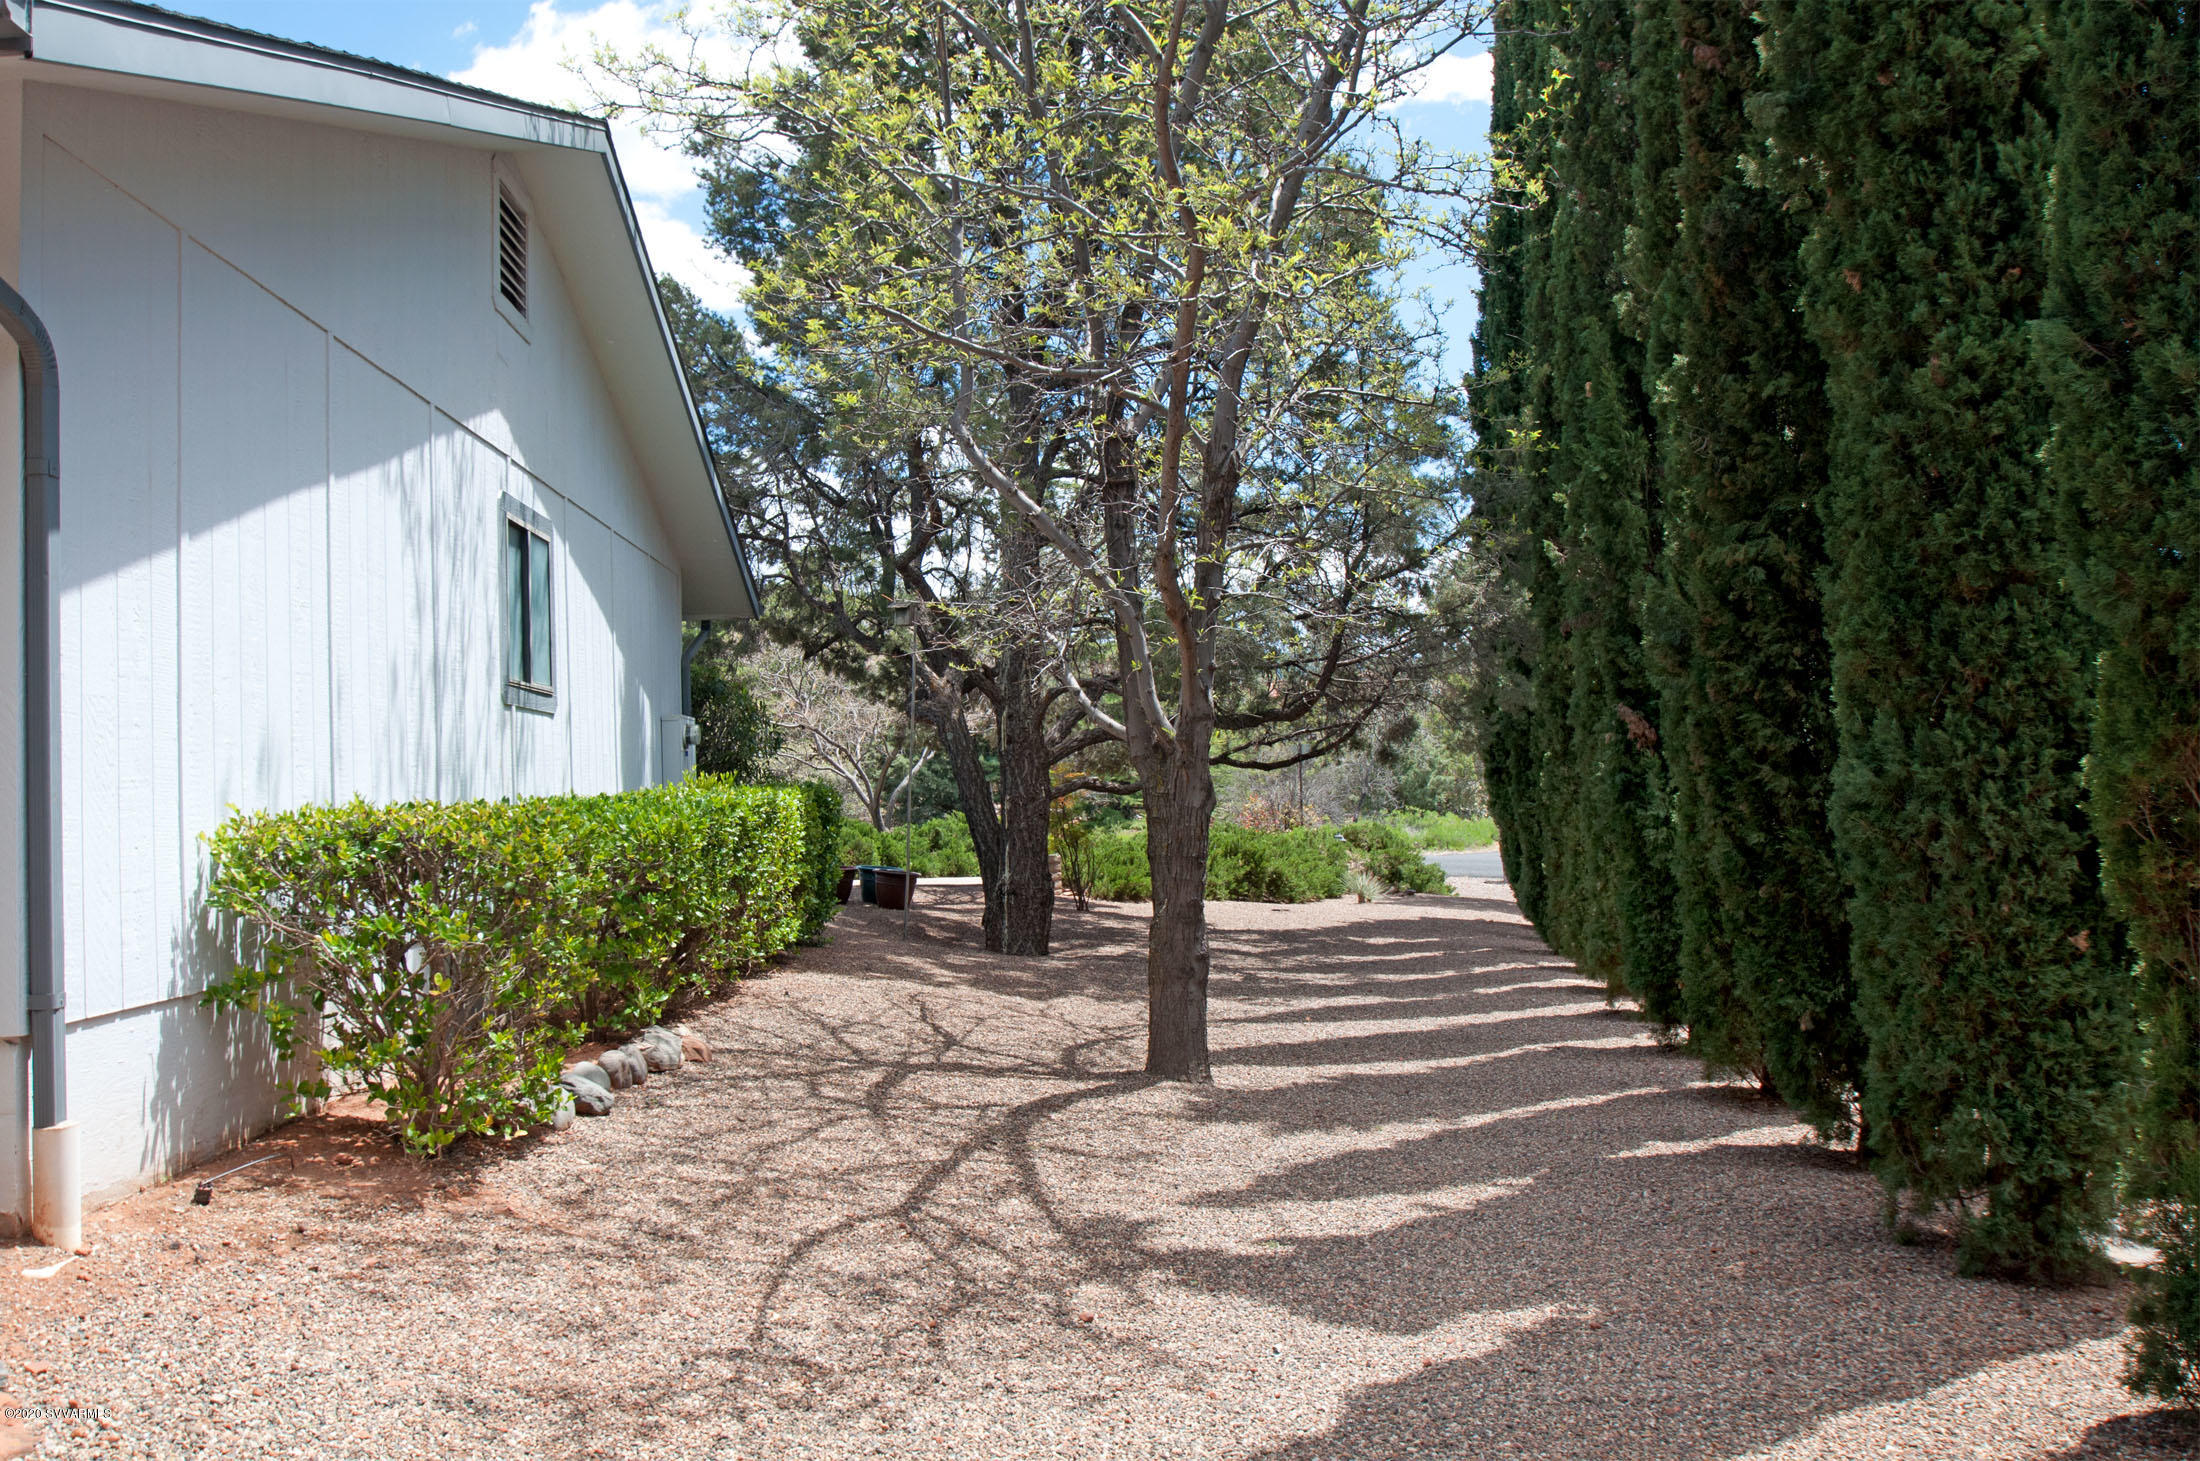 310 Flaming Arrow Way Sedona, AZ 86336